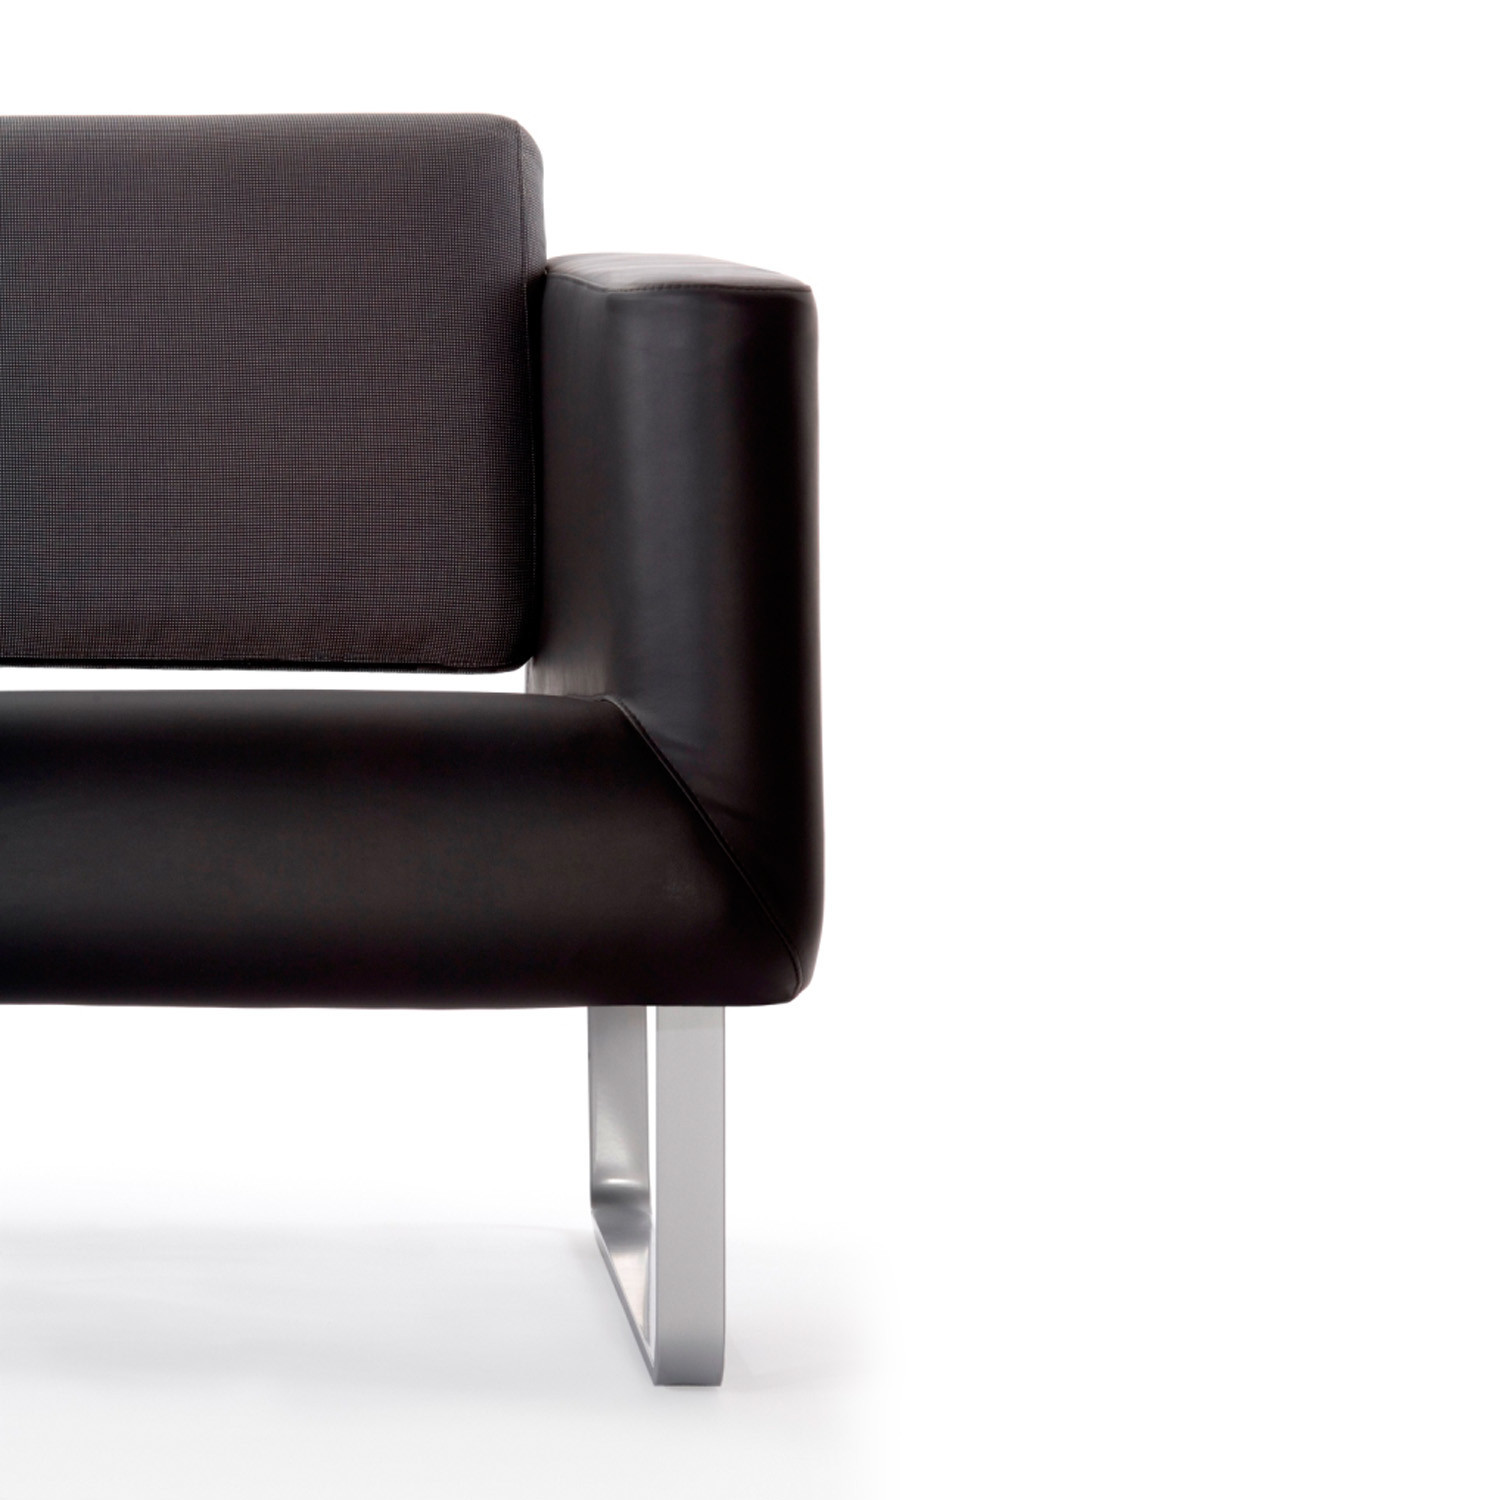 Orbis Sofa Arm Detail by Connection